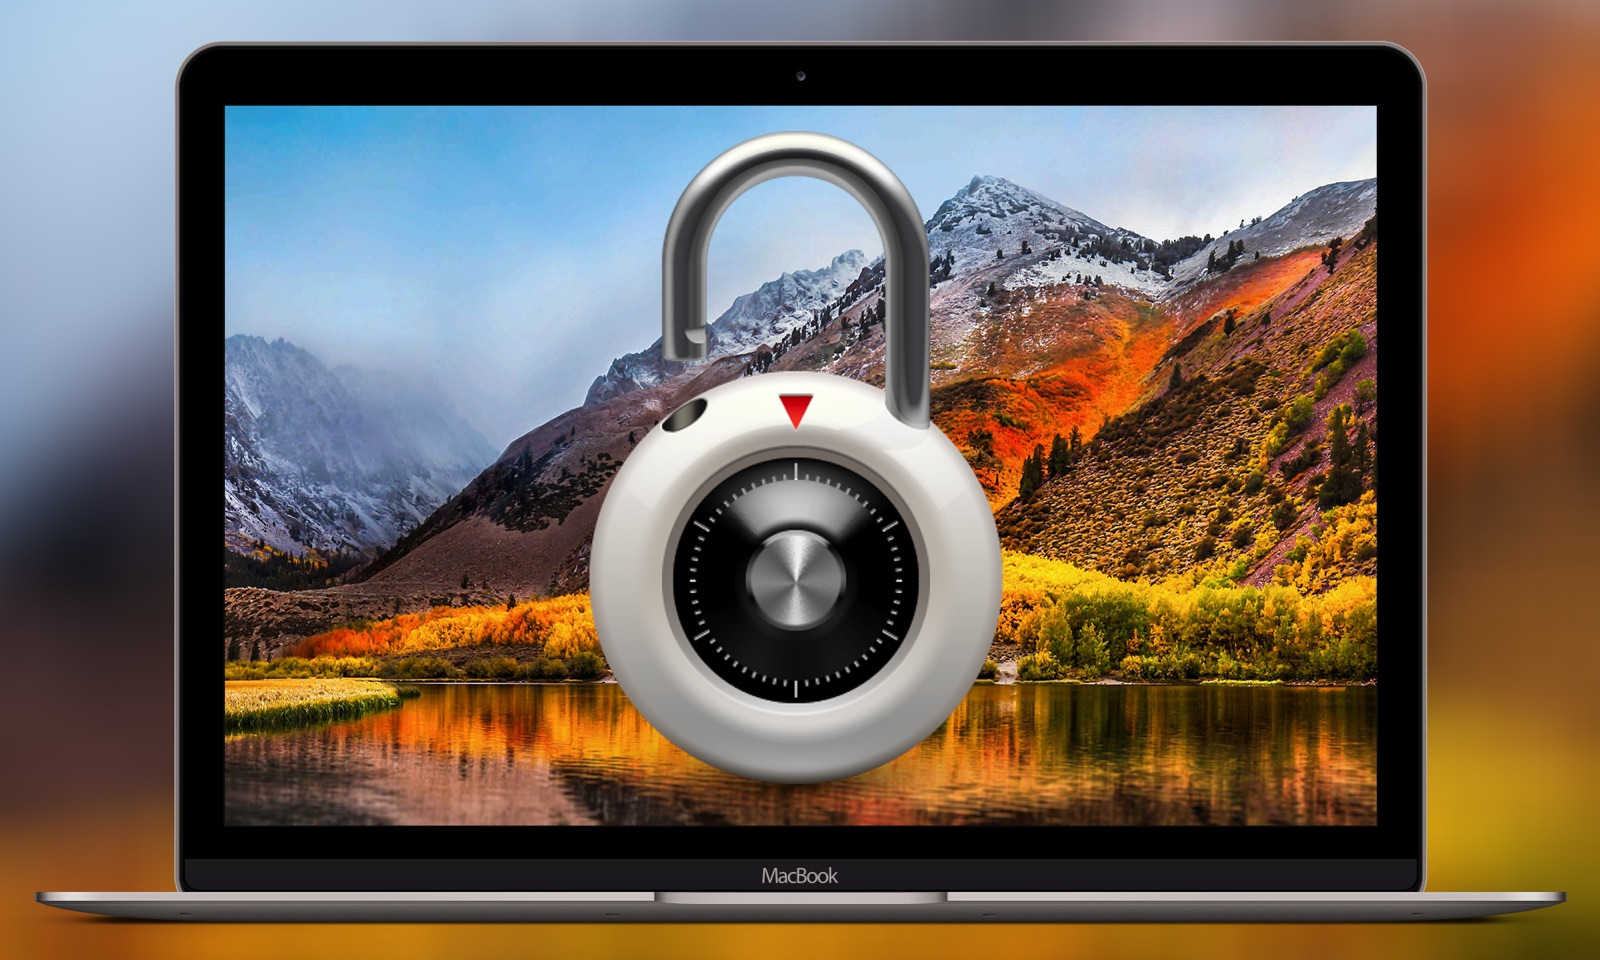 New Lock Screen feature in macOS High Sierra – Swiss Mac User 